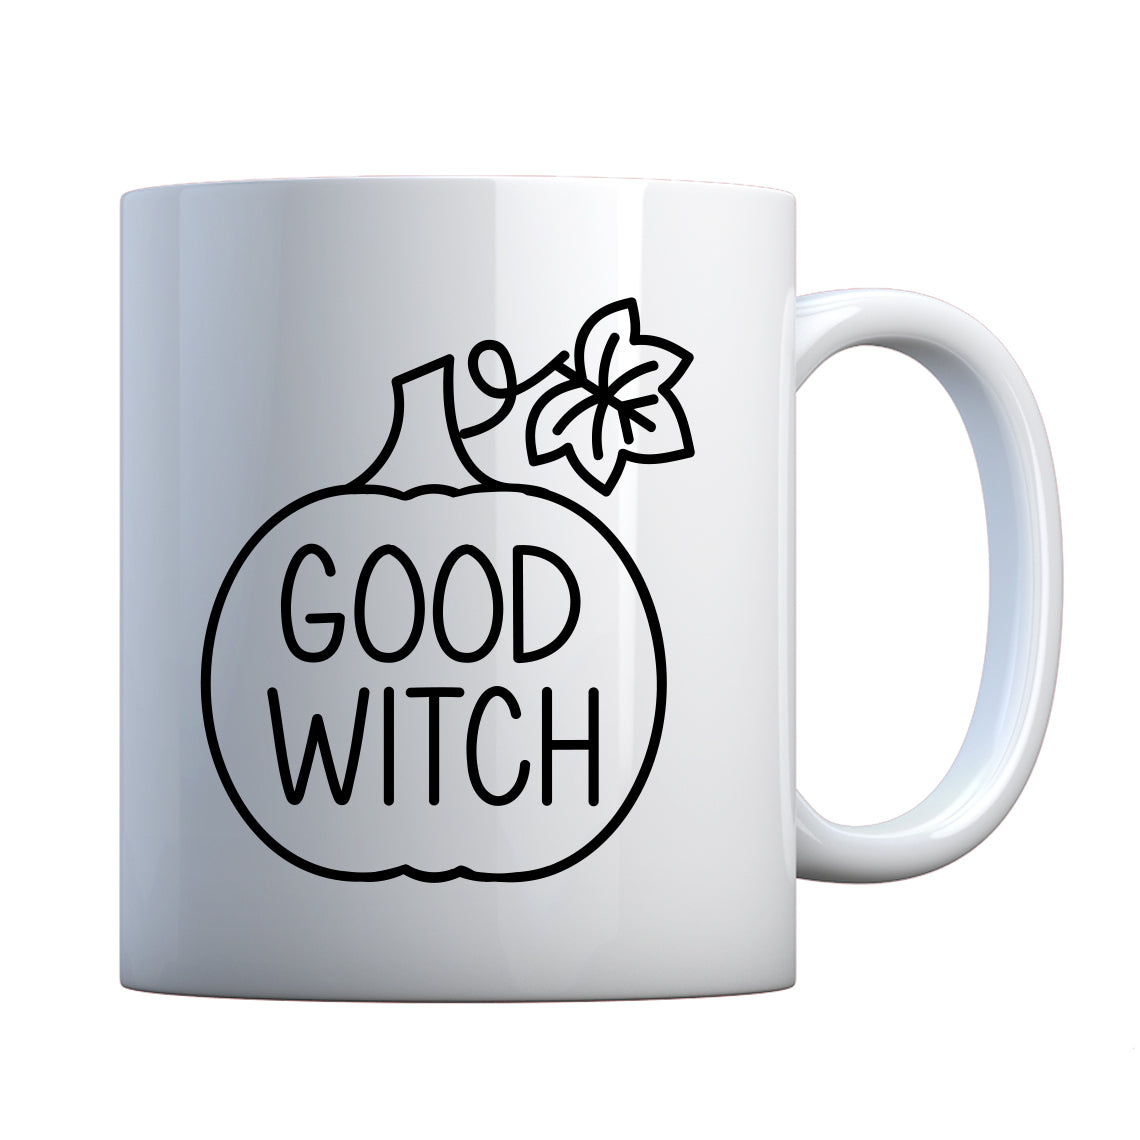 Good Witch Ceramic Gift Mug